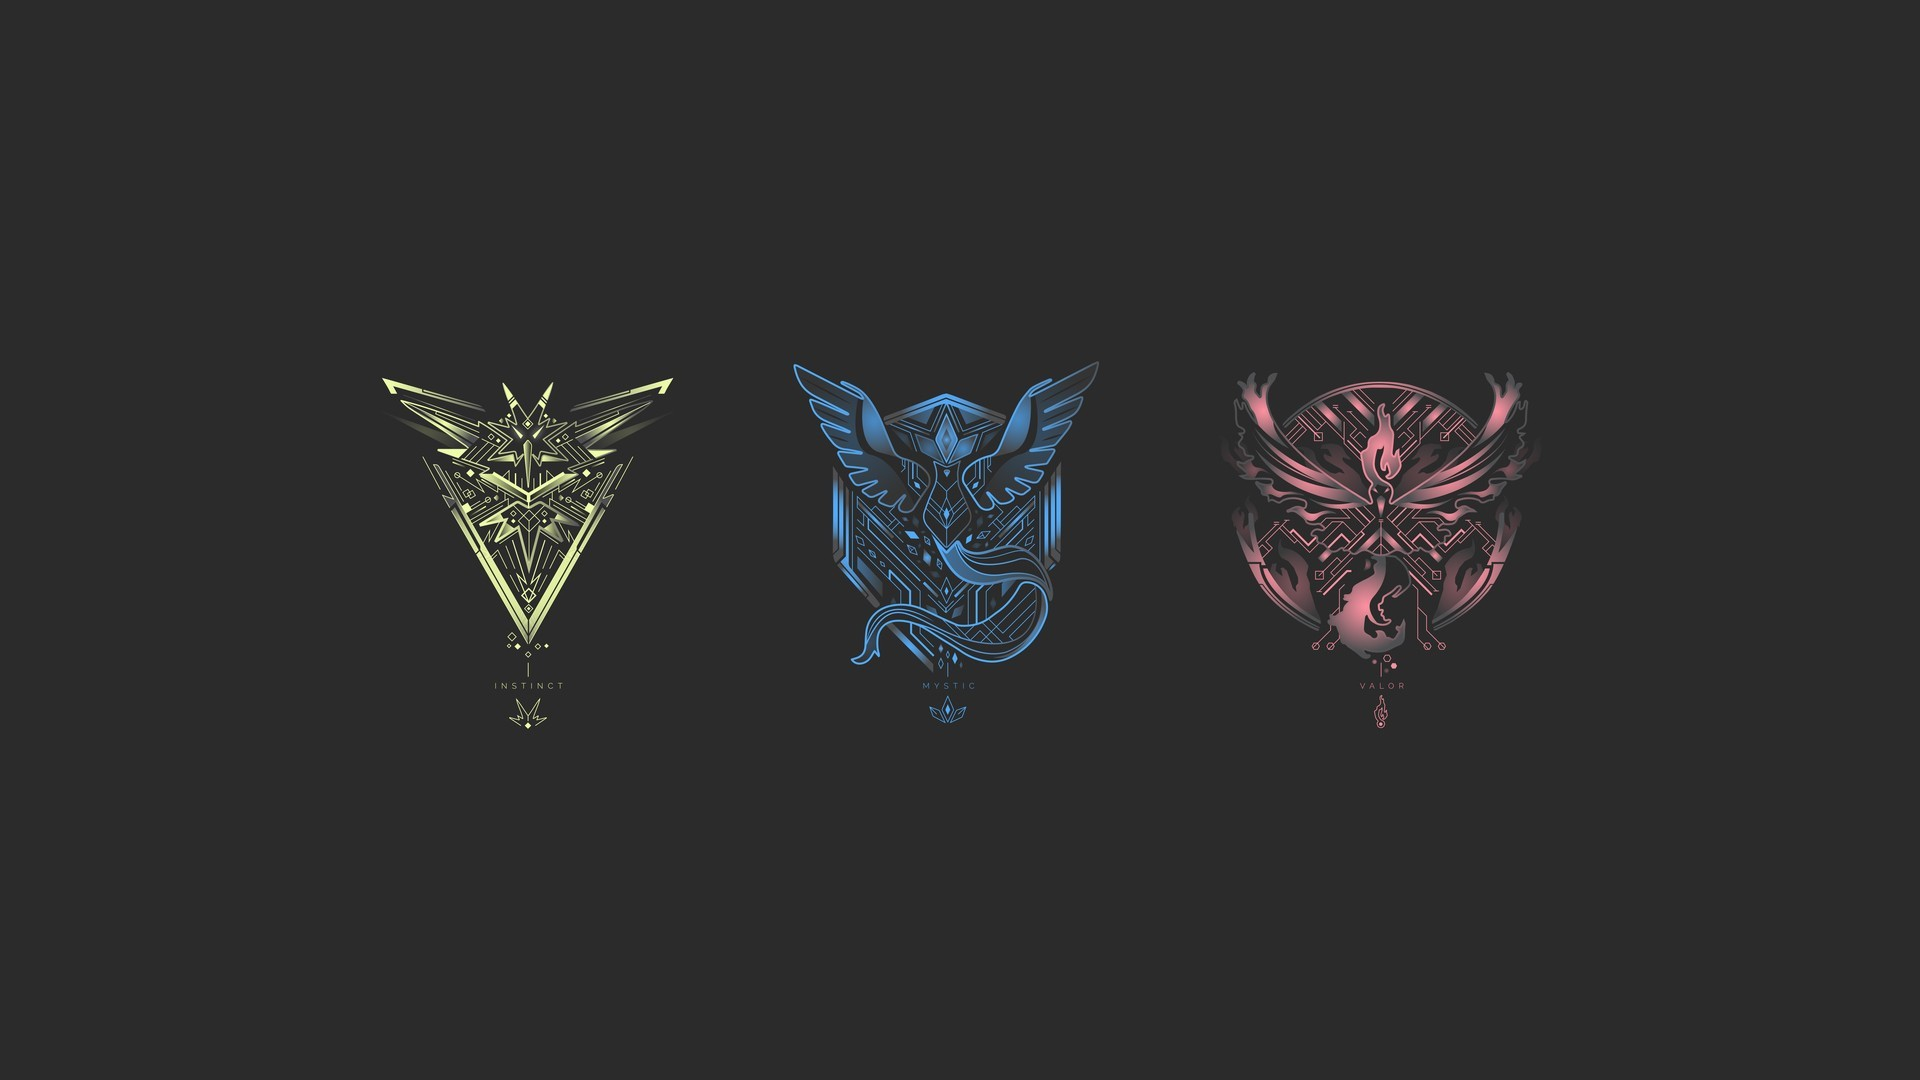 1920x1080 Pokemon Go Teams Minimalism 1440x900 Resolution